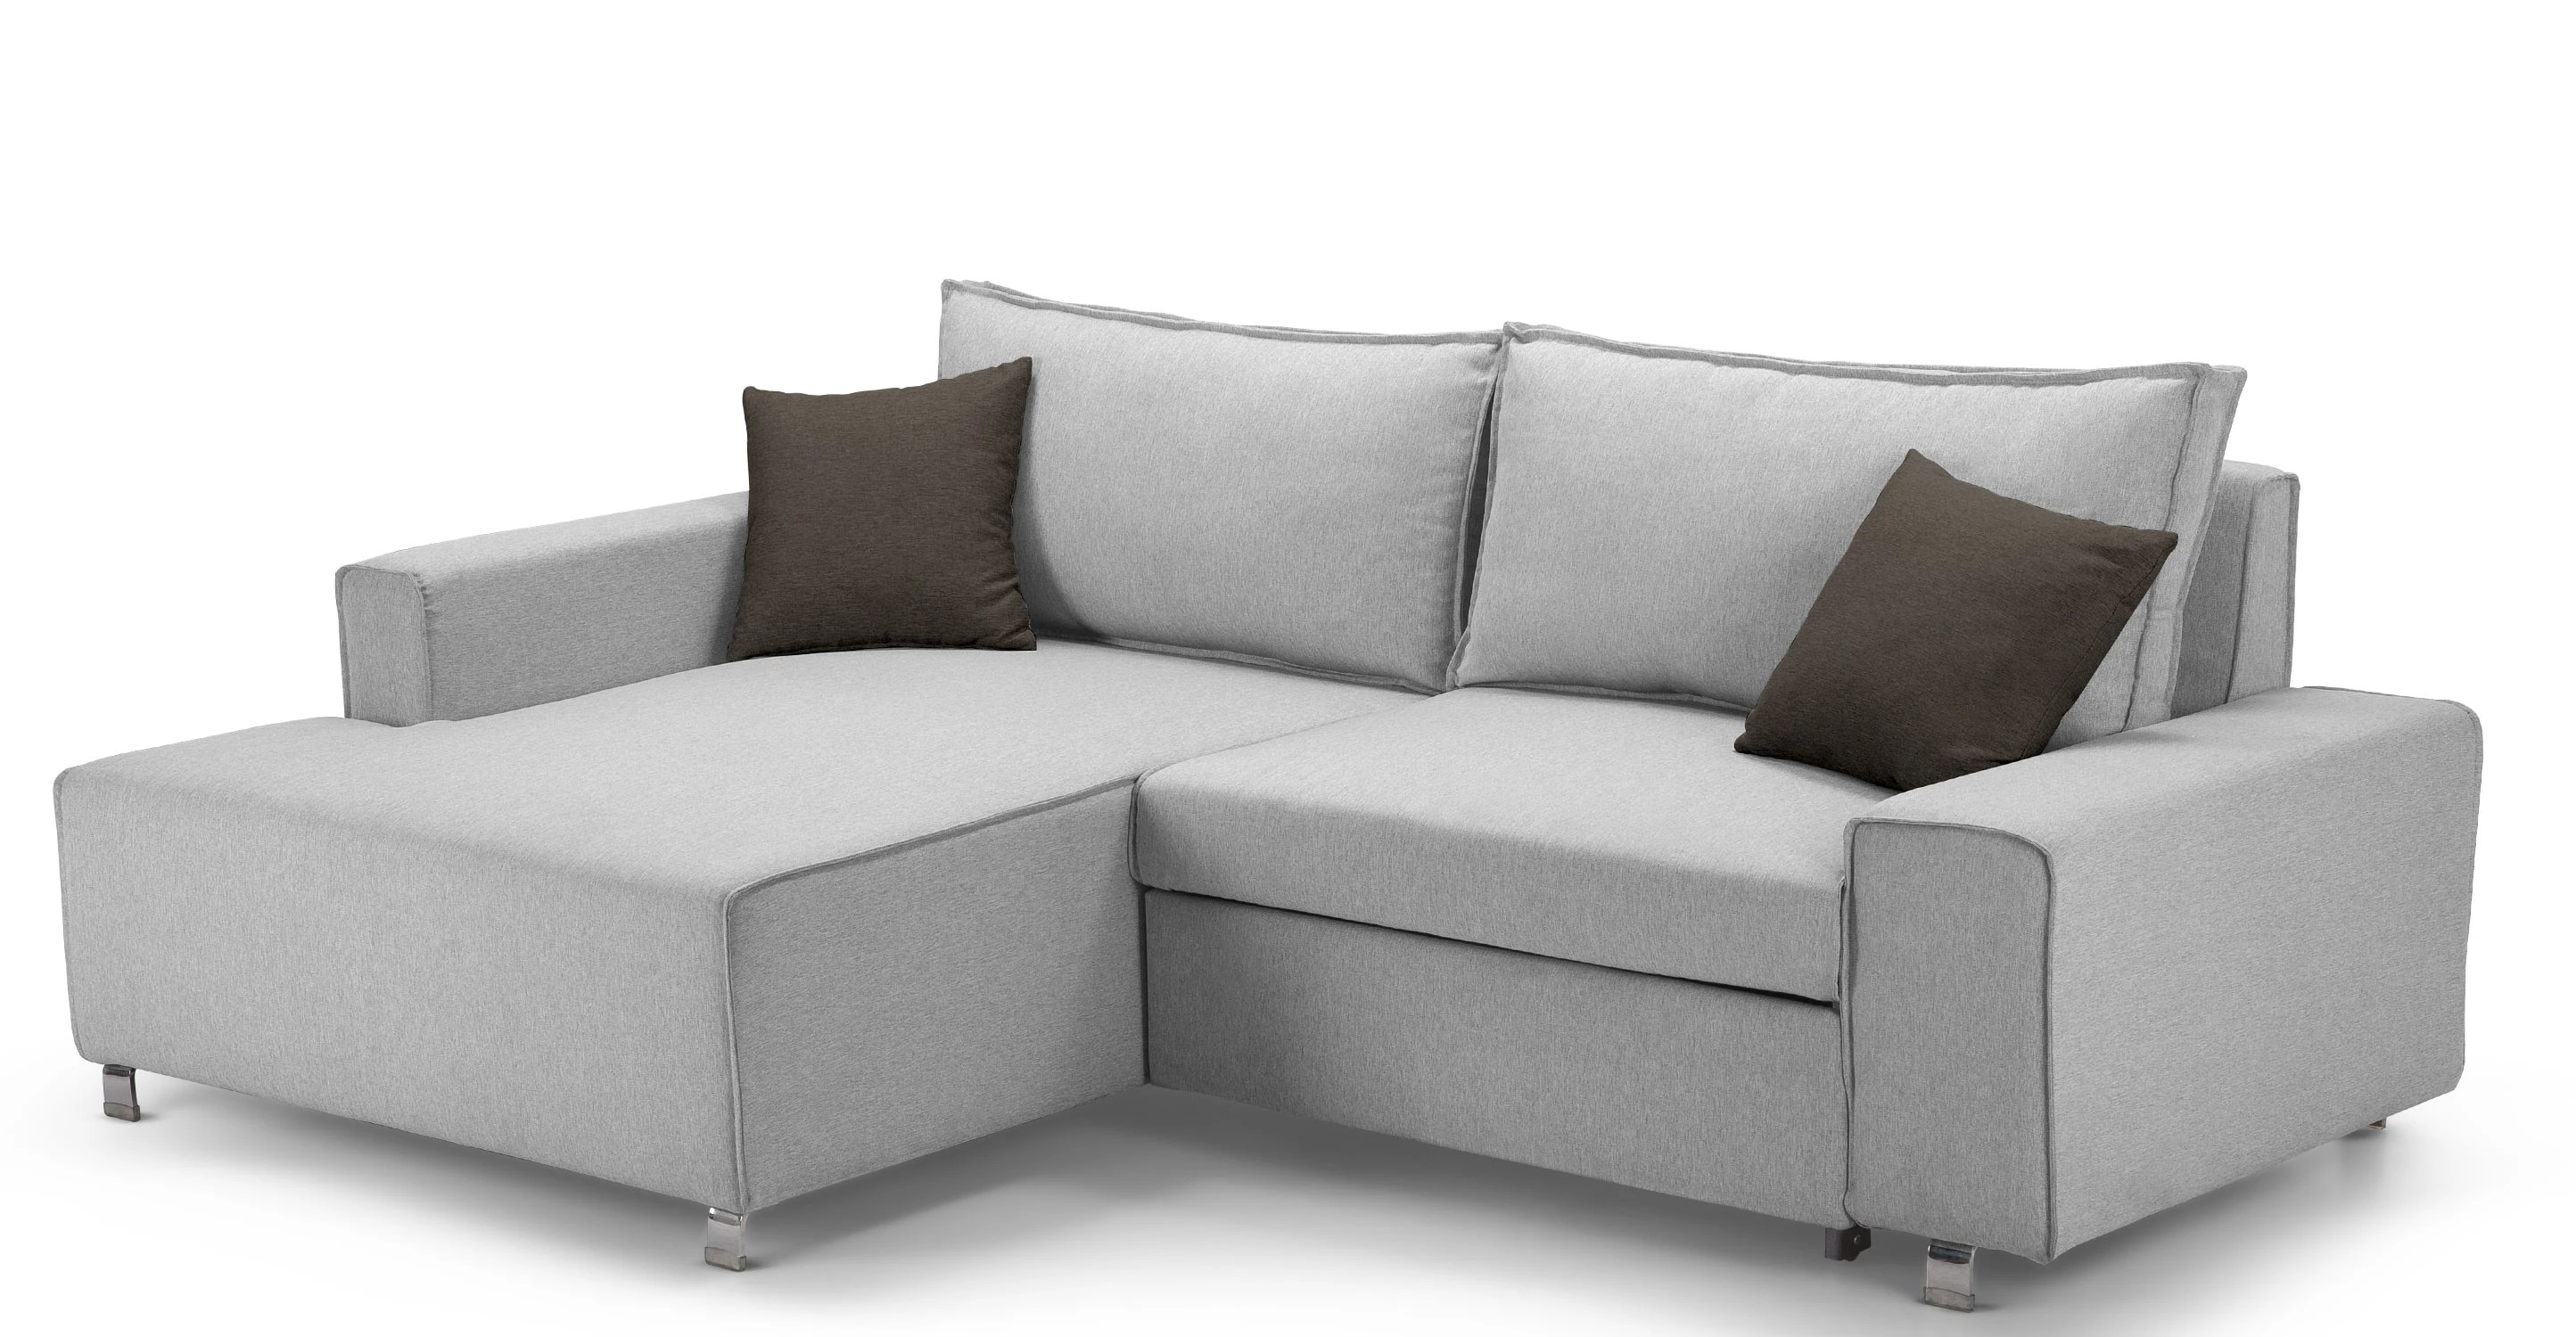 corner sofa bed roma grey pallet furniture table mayne left hand facing clear stone